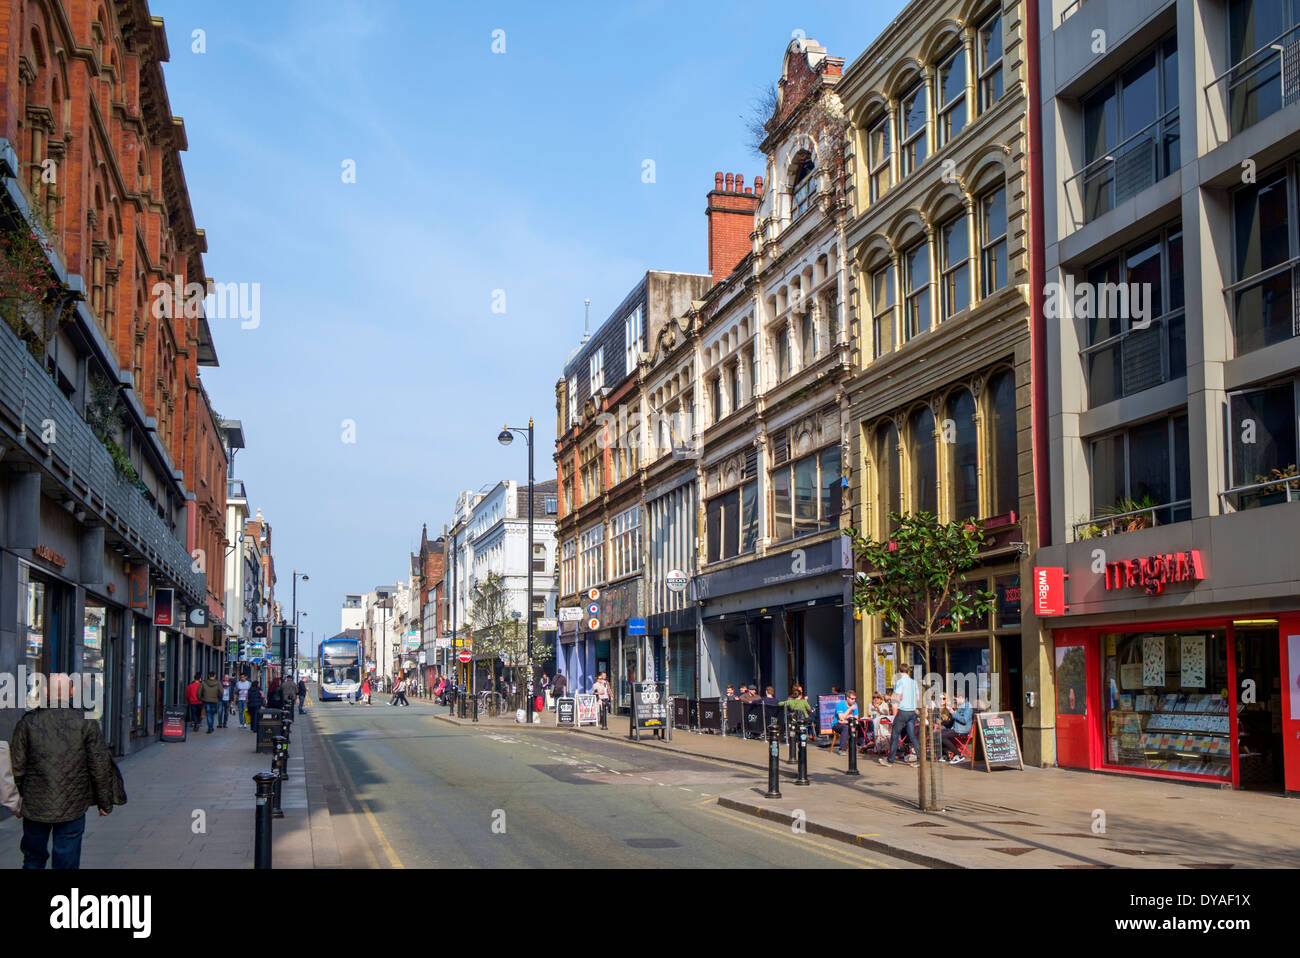 Shops, bars and cafes on Oldham Street in the Northern Quarter, Manchester, England, UK - Stock Image